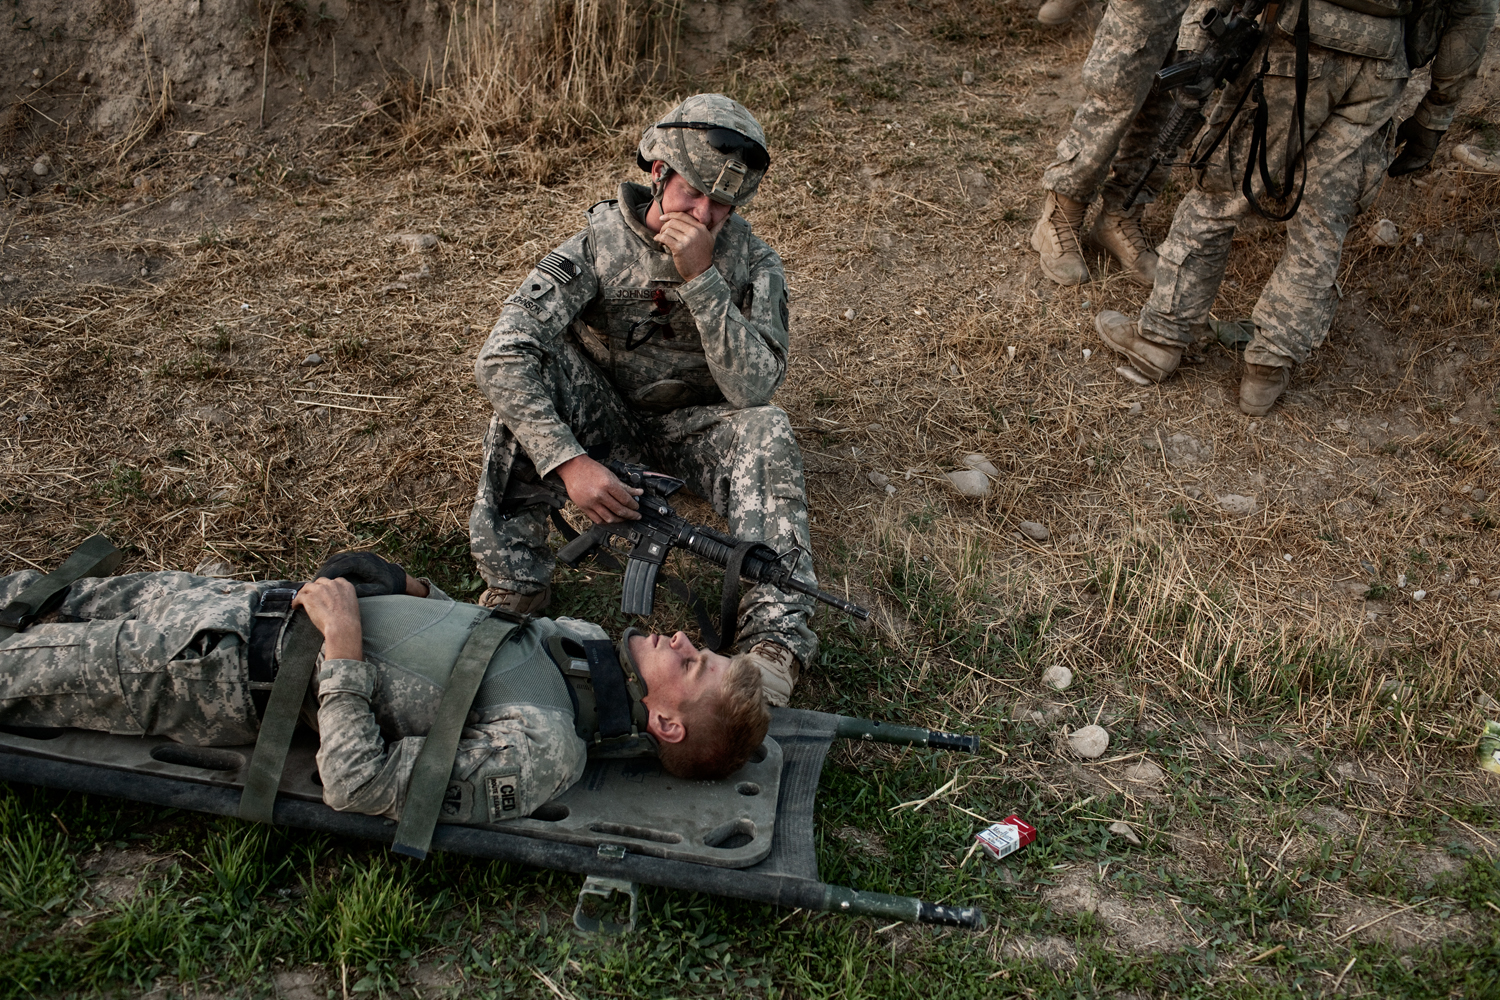 U.S. Army Specialist T.J. Fecteau lies on a stretcher after being concussed in an improvised explosive device attack on his vehicle in the Tangi Valley, Wardak Province, Afghanistan.